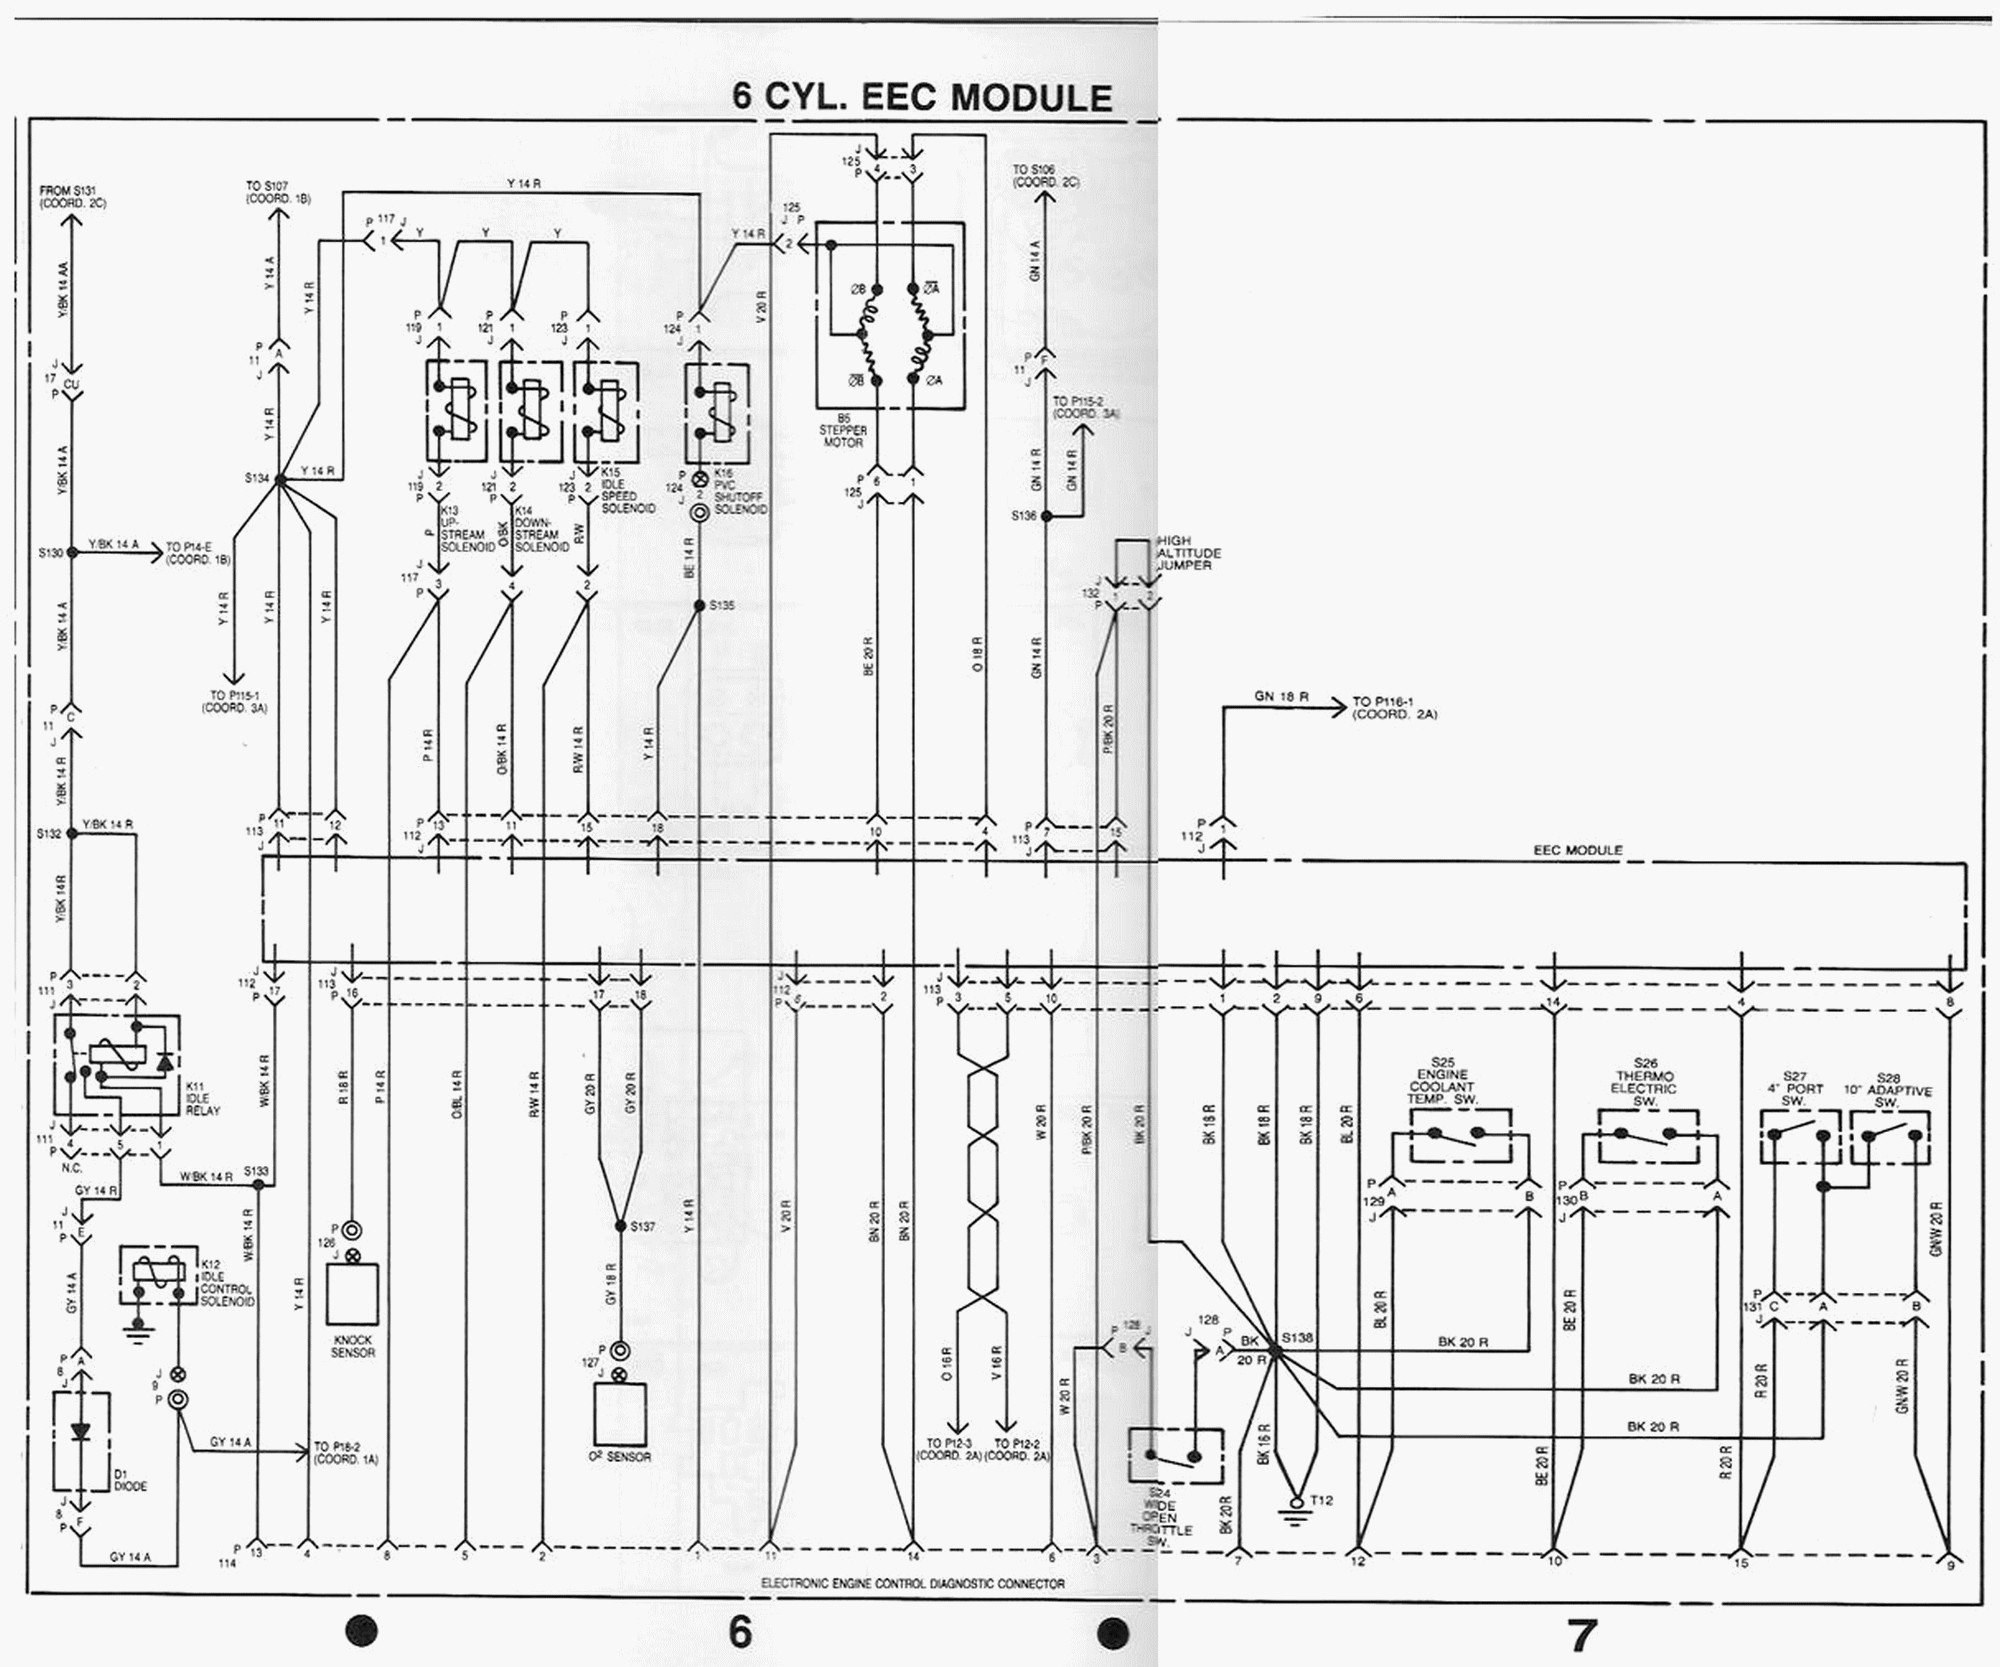 Pacer Engine Diagram additionally 70 Buick Skylark Fuse Box Wiring furthermore Amc 401 Engine Diagram further Vacuumhoses likewise 1969 Gm Coil Wiring. on amc javelin wiring diagram